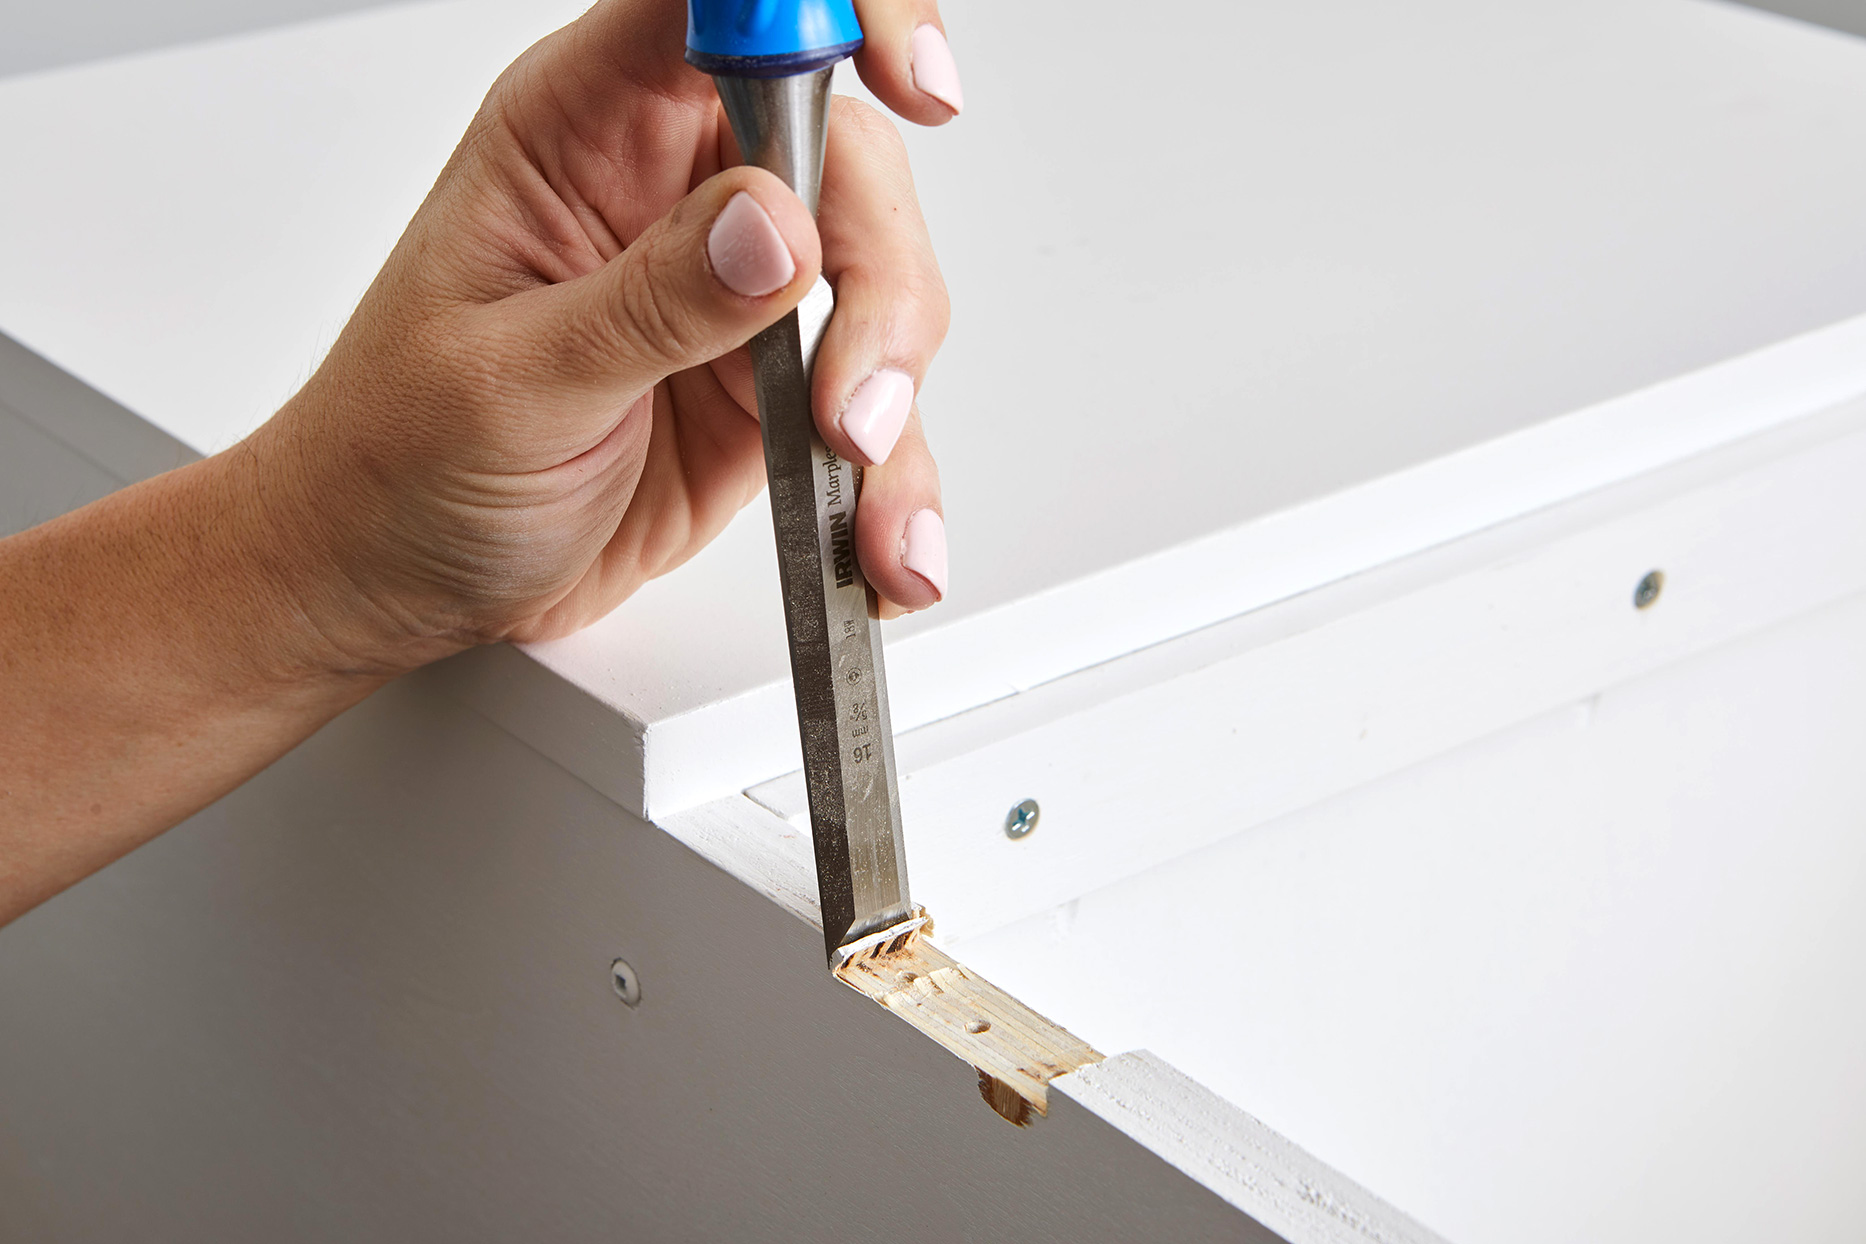 carving space for board in white surface